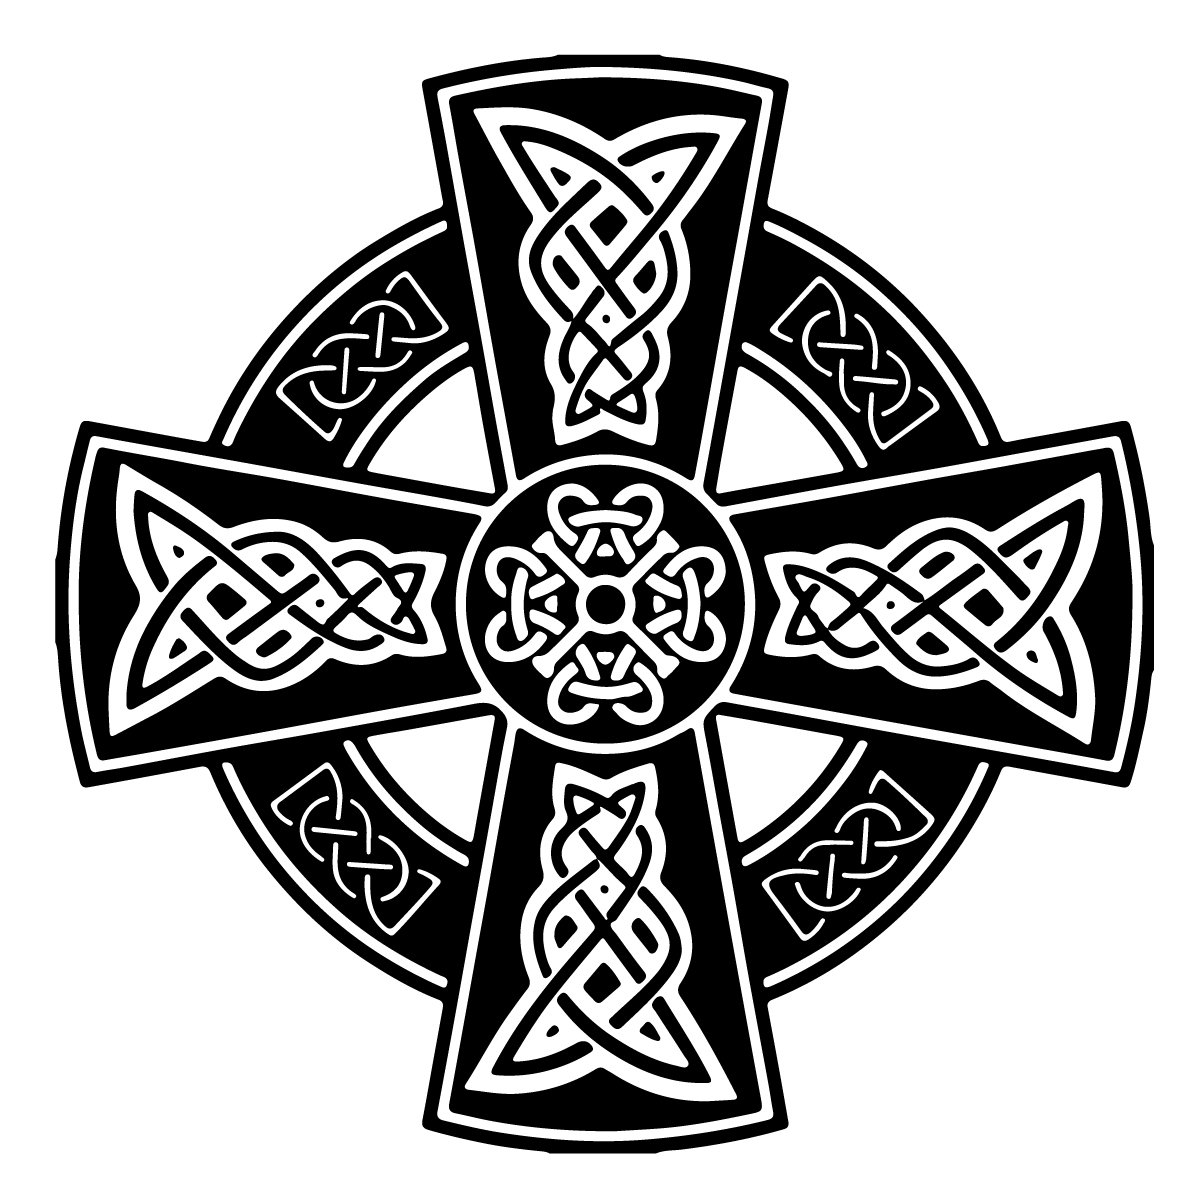 Celtic symbols and their meanings mythologian there are many theories regarding the origin of the symbol although none of them could be and possibly never will be confirmed biocorpaavc Choice Image